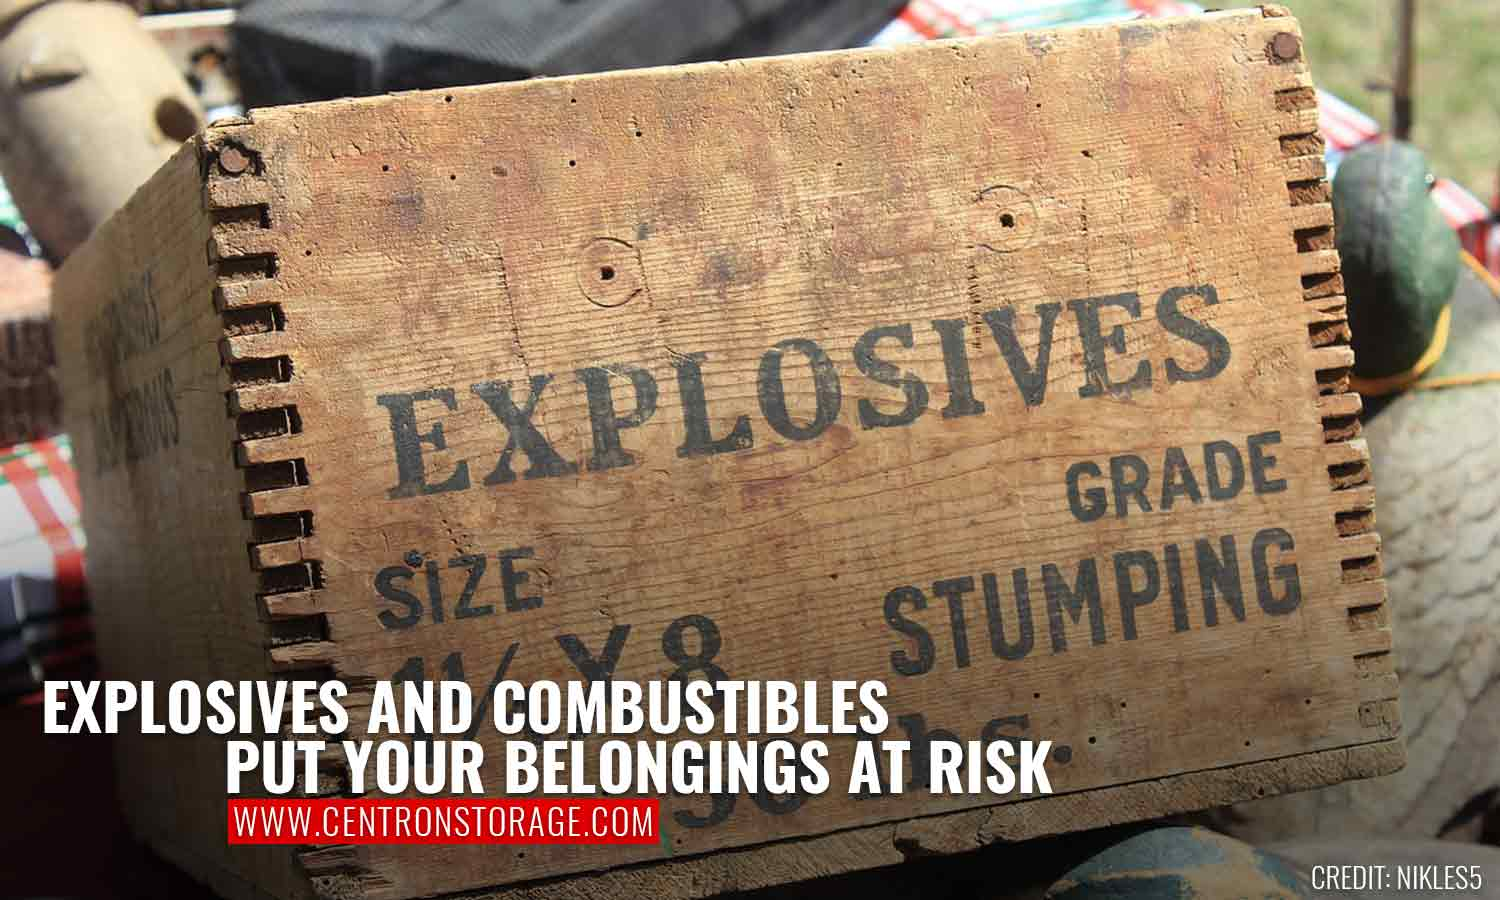 Explosives and combustibles put your belongings at risk